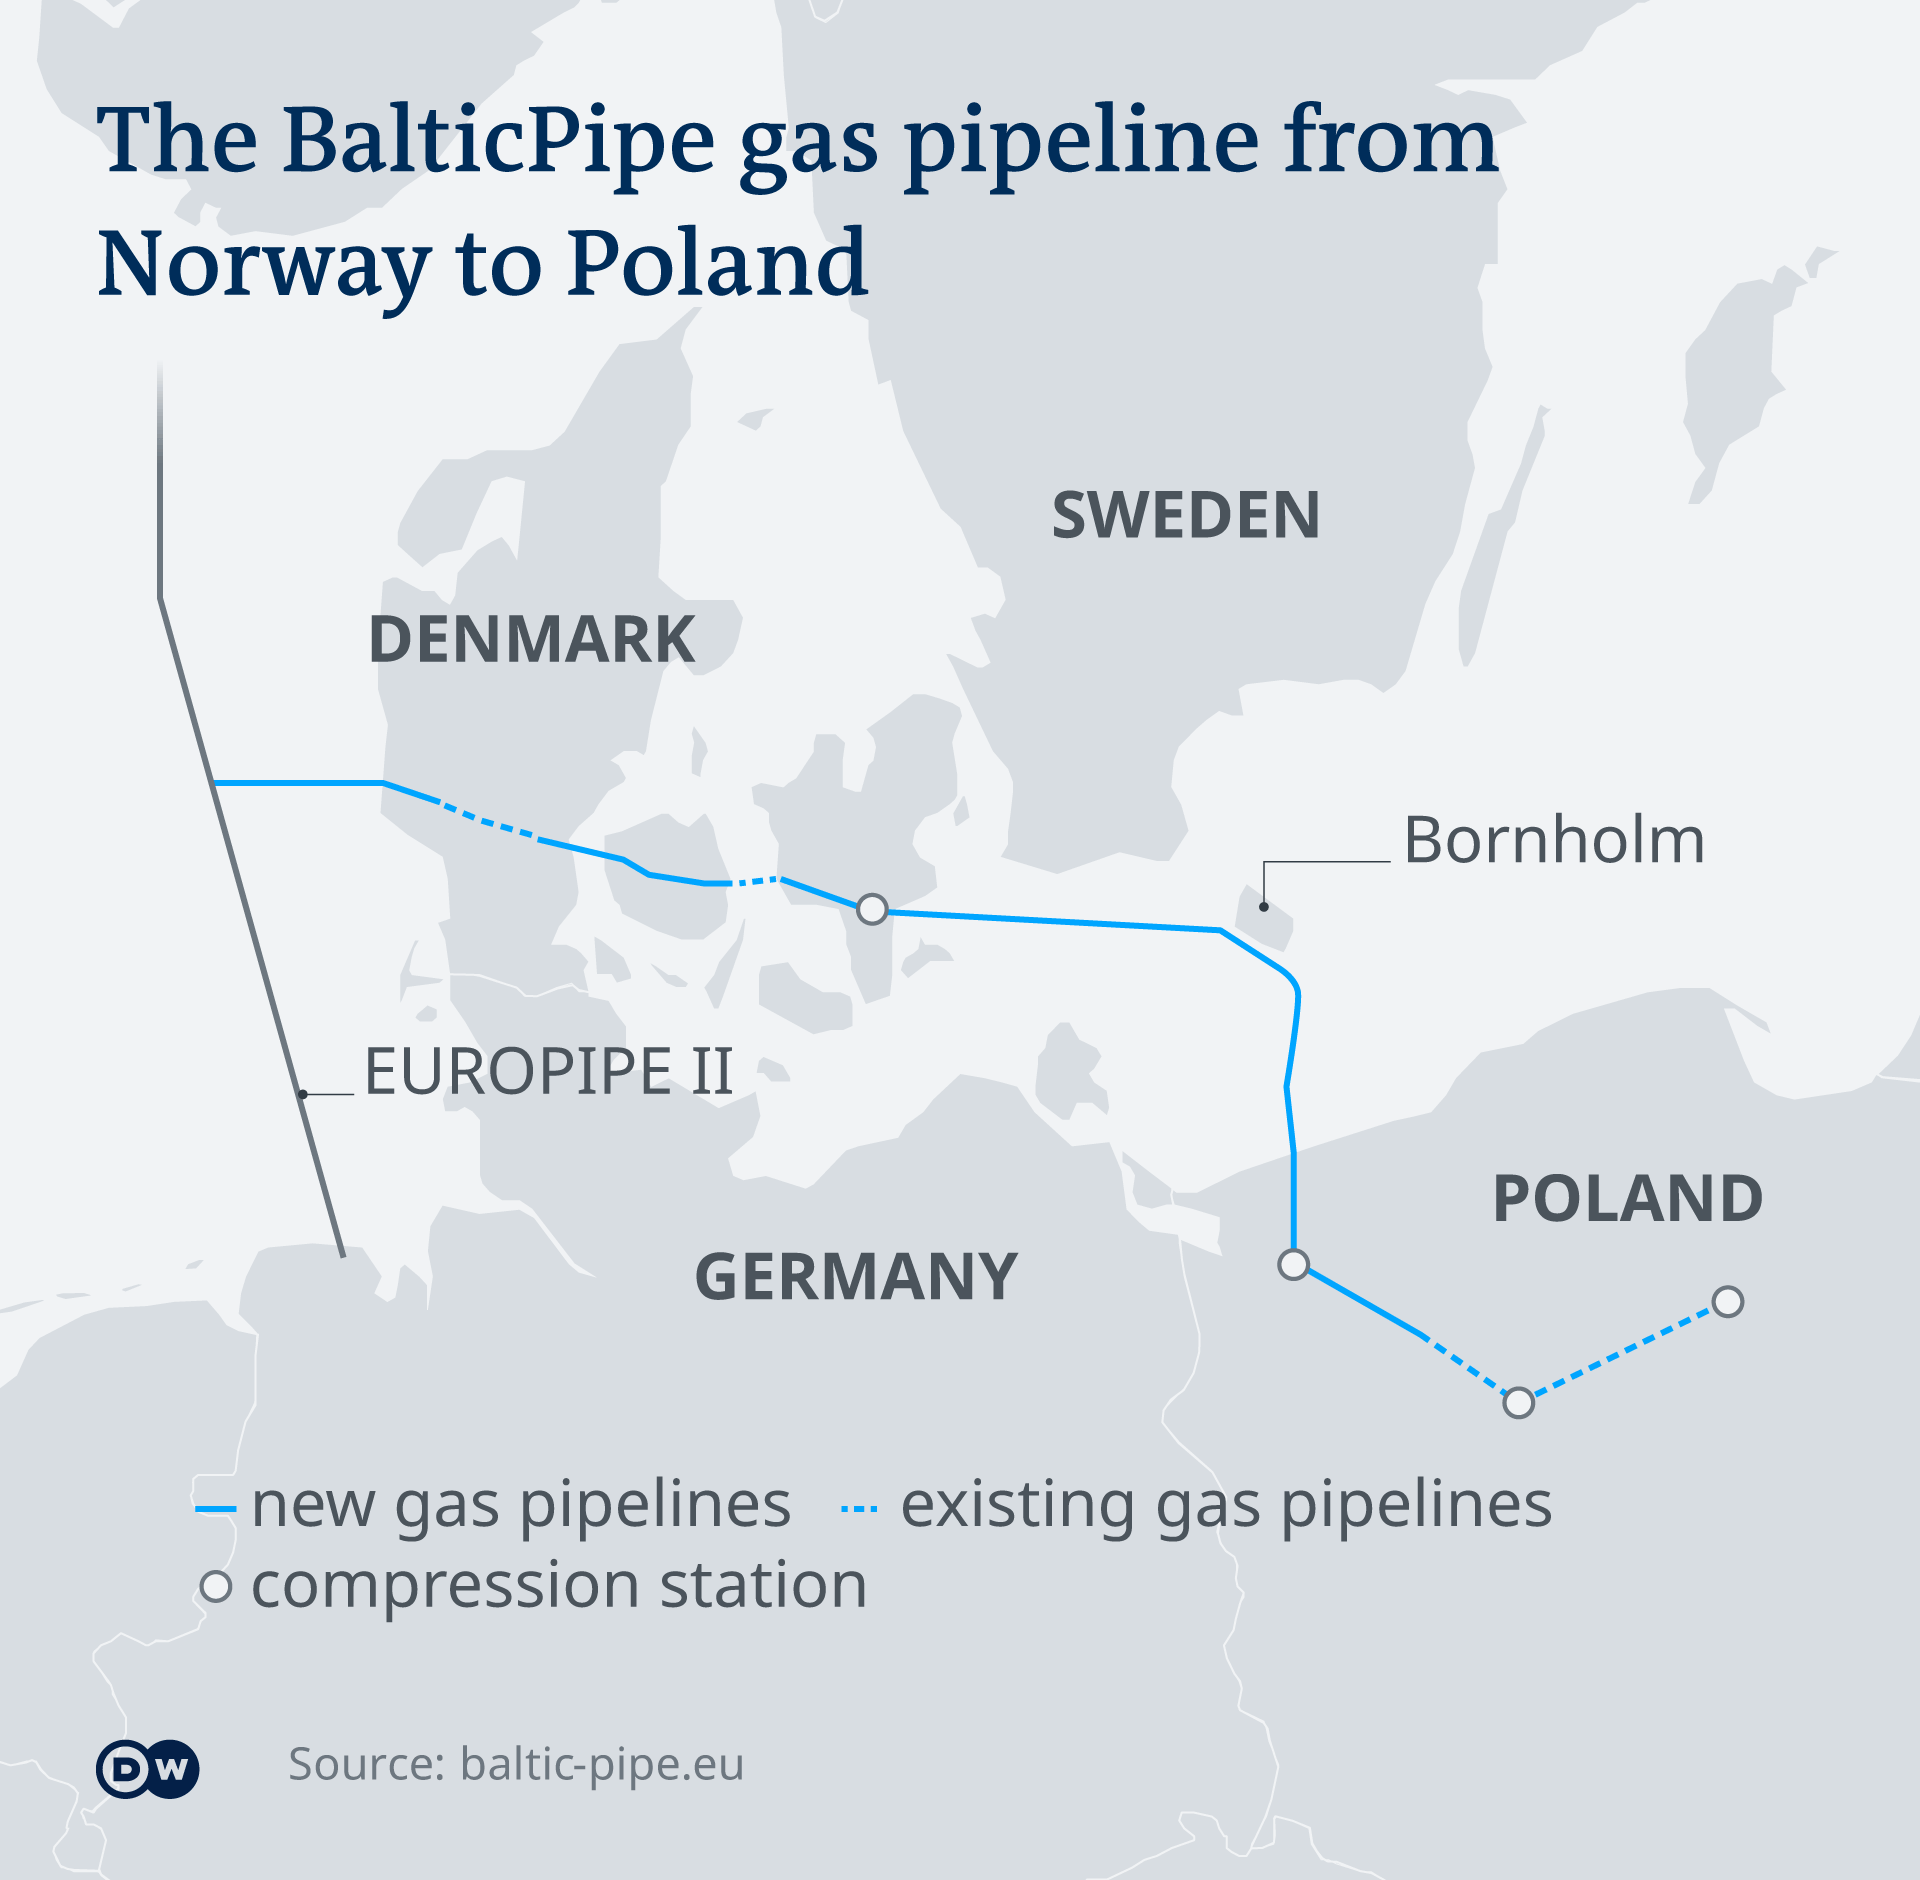 An infographic showing the planned Baltic Pipe